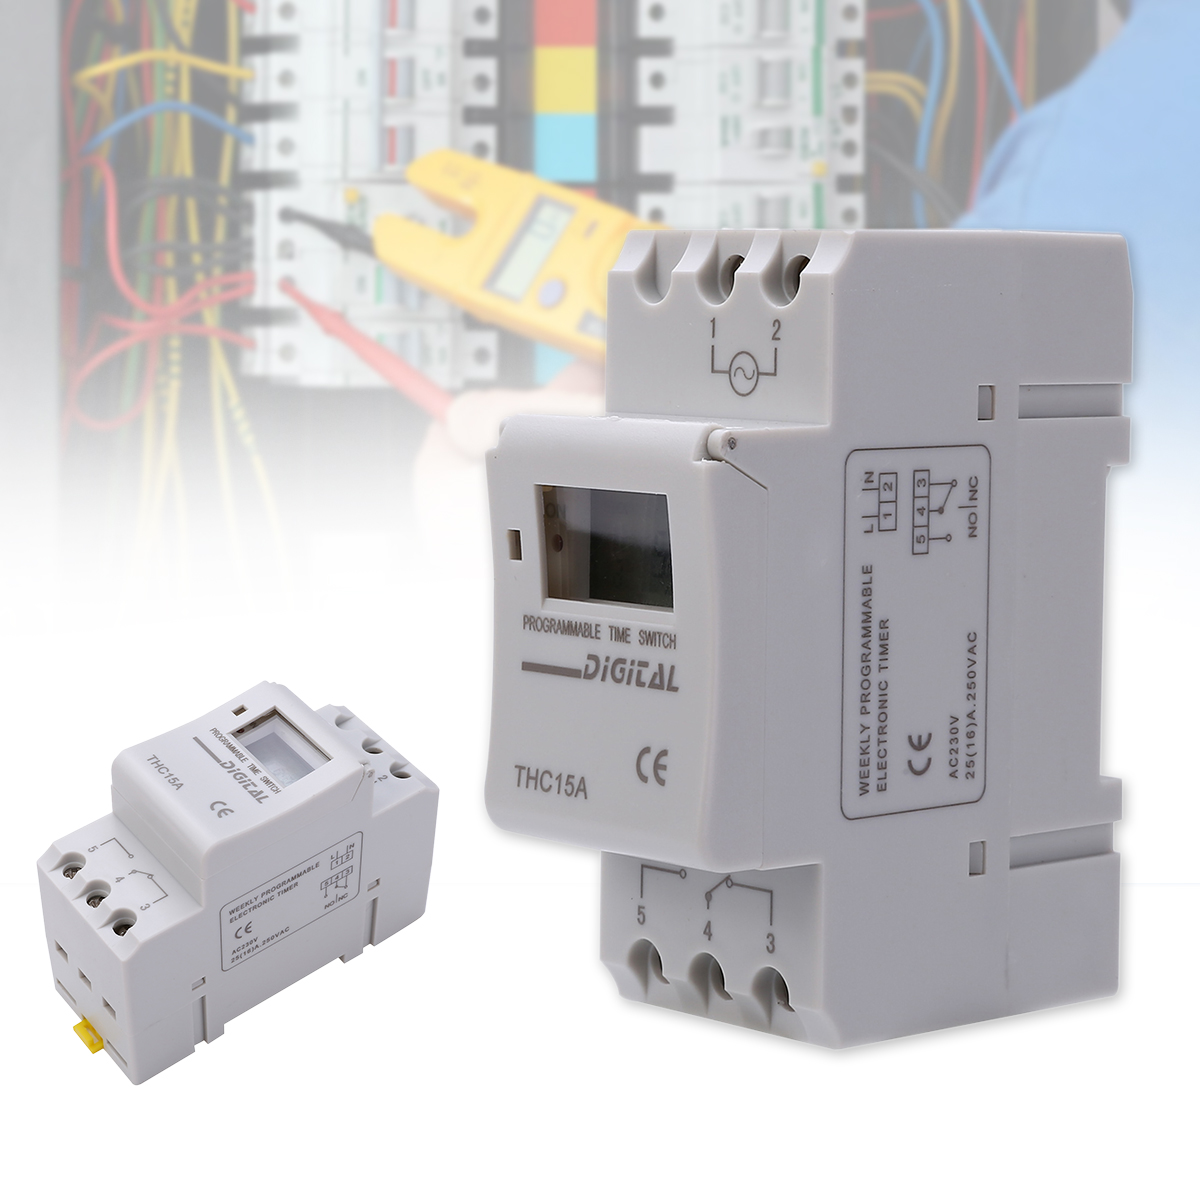 Mayitr AC 220V 16A Time Relay Switch LCD DIN Programmable Weekly Rail Timer Switch 50 / 60Hz Electrical Equipment new high quality 16a 220v ac digital lcd weekly programmable timer time relay switch ve505 t0 41